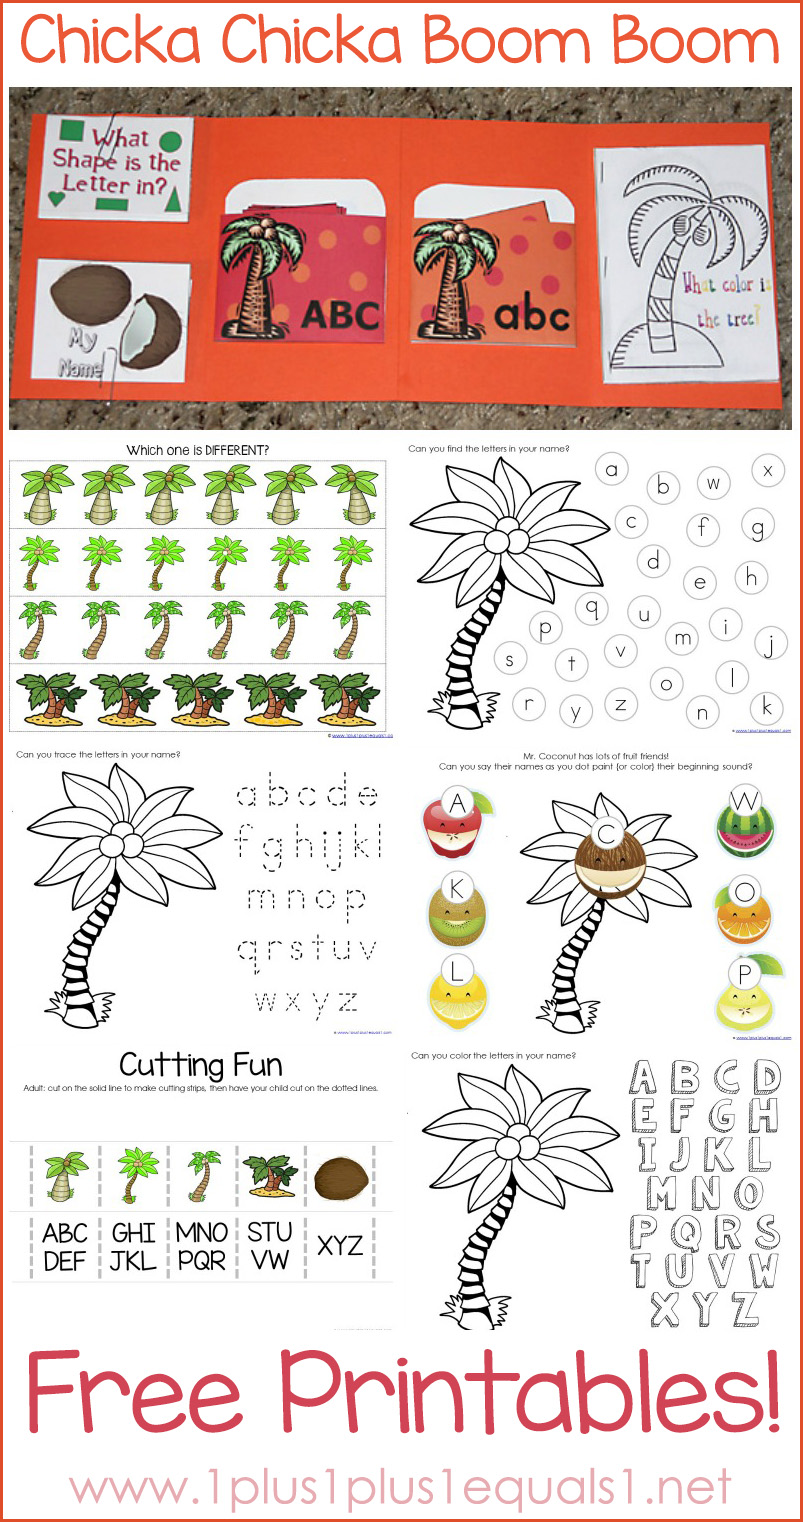 Chicka Chicka Boom Boom Printables for Tot School and Preschool